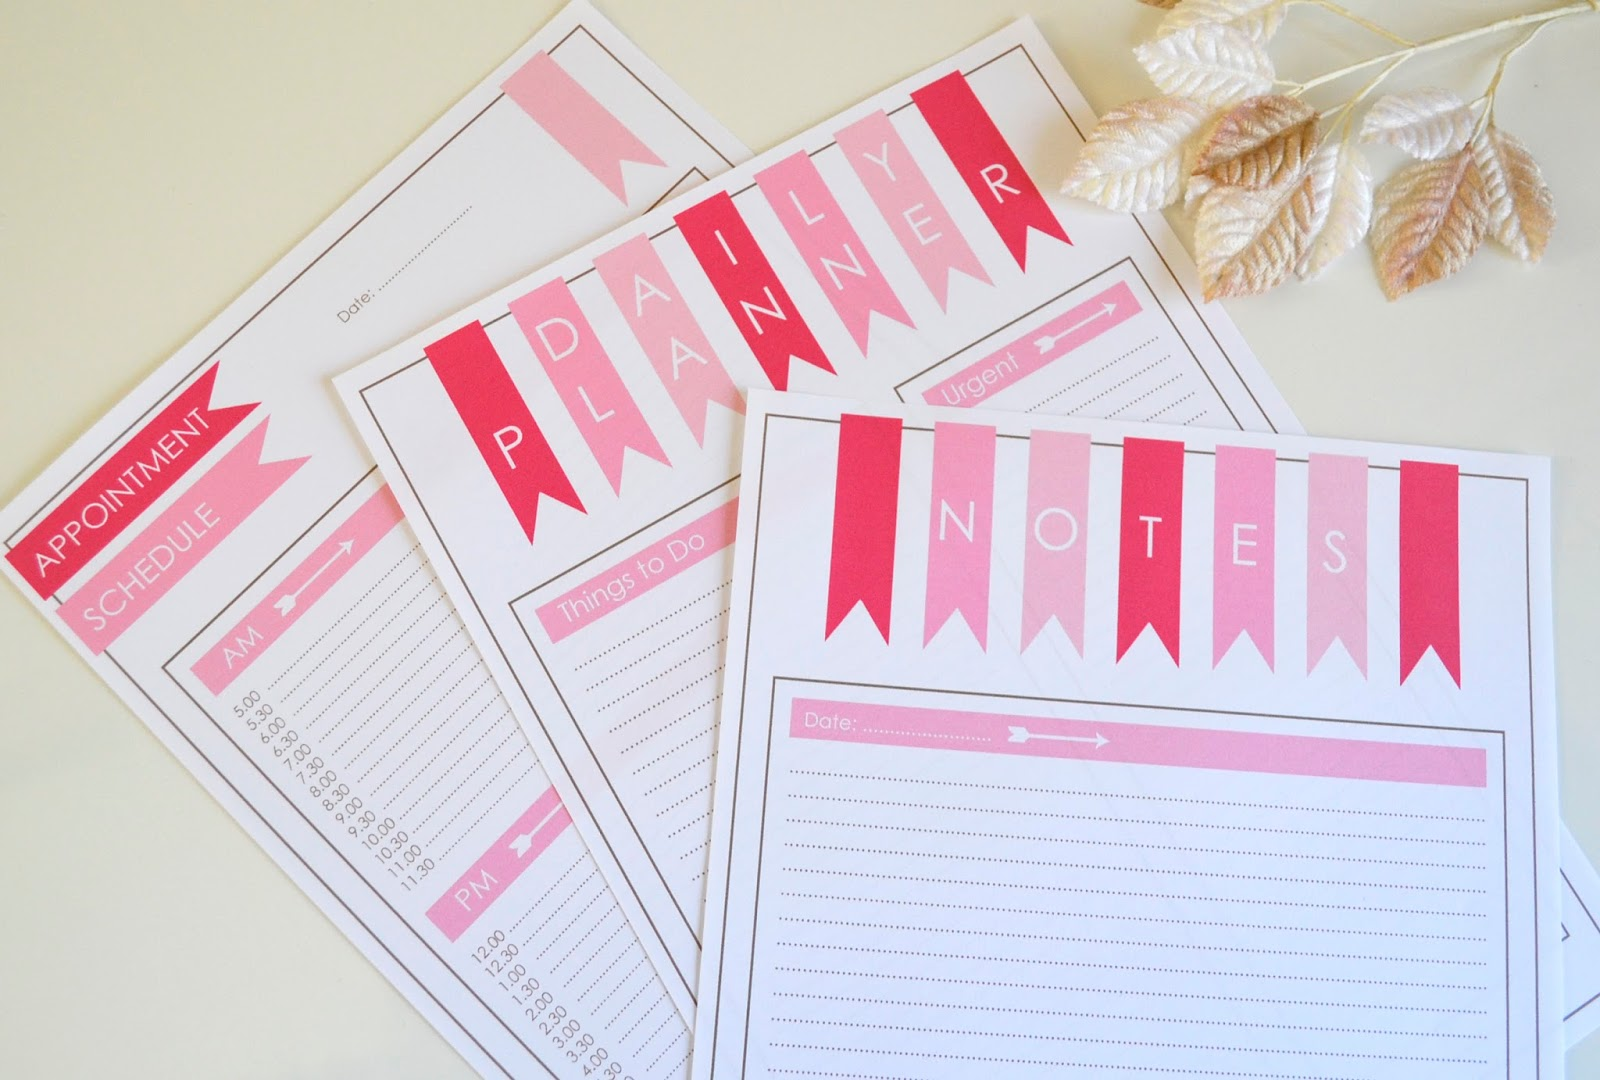 https://www.etsy.com/listing/199050546/daily-planner-schedule-and-notes-pink?ref=shop_home_active_6